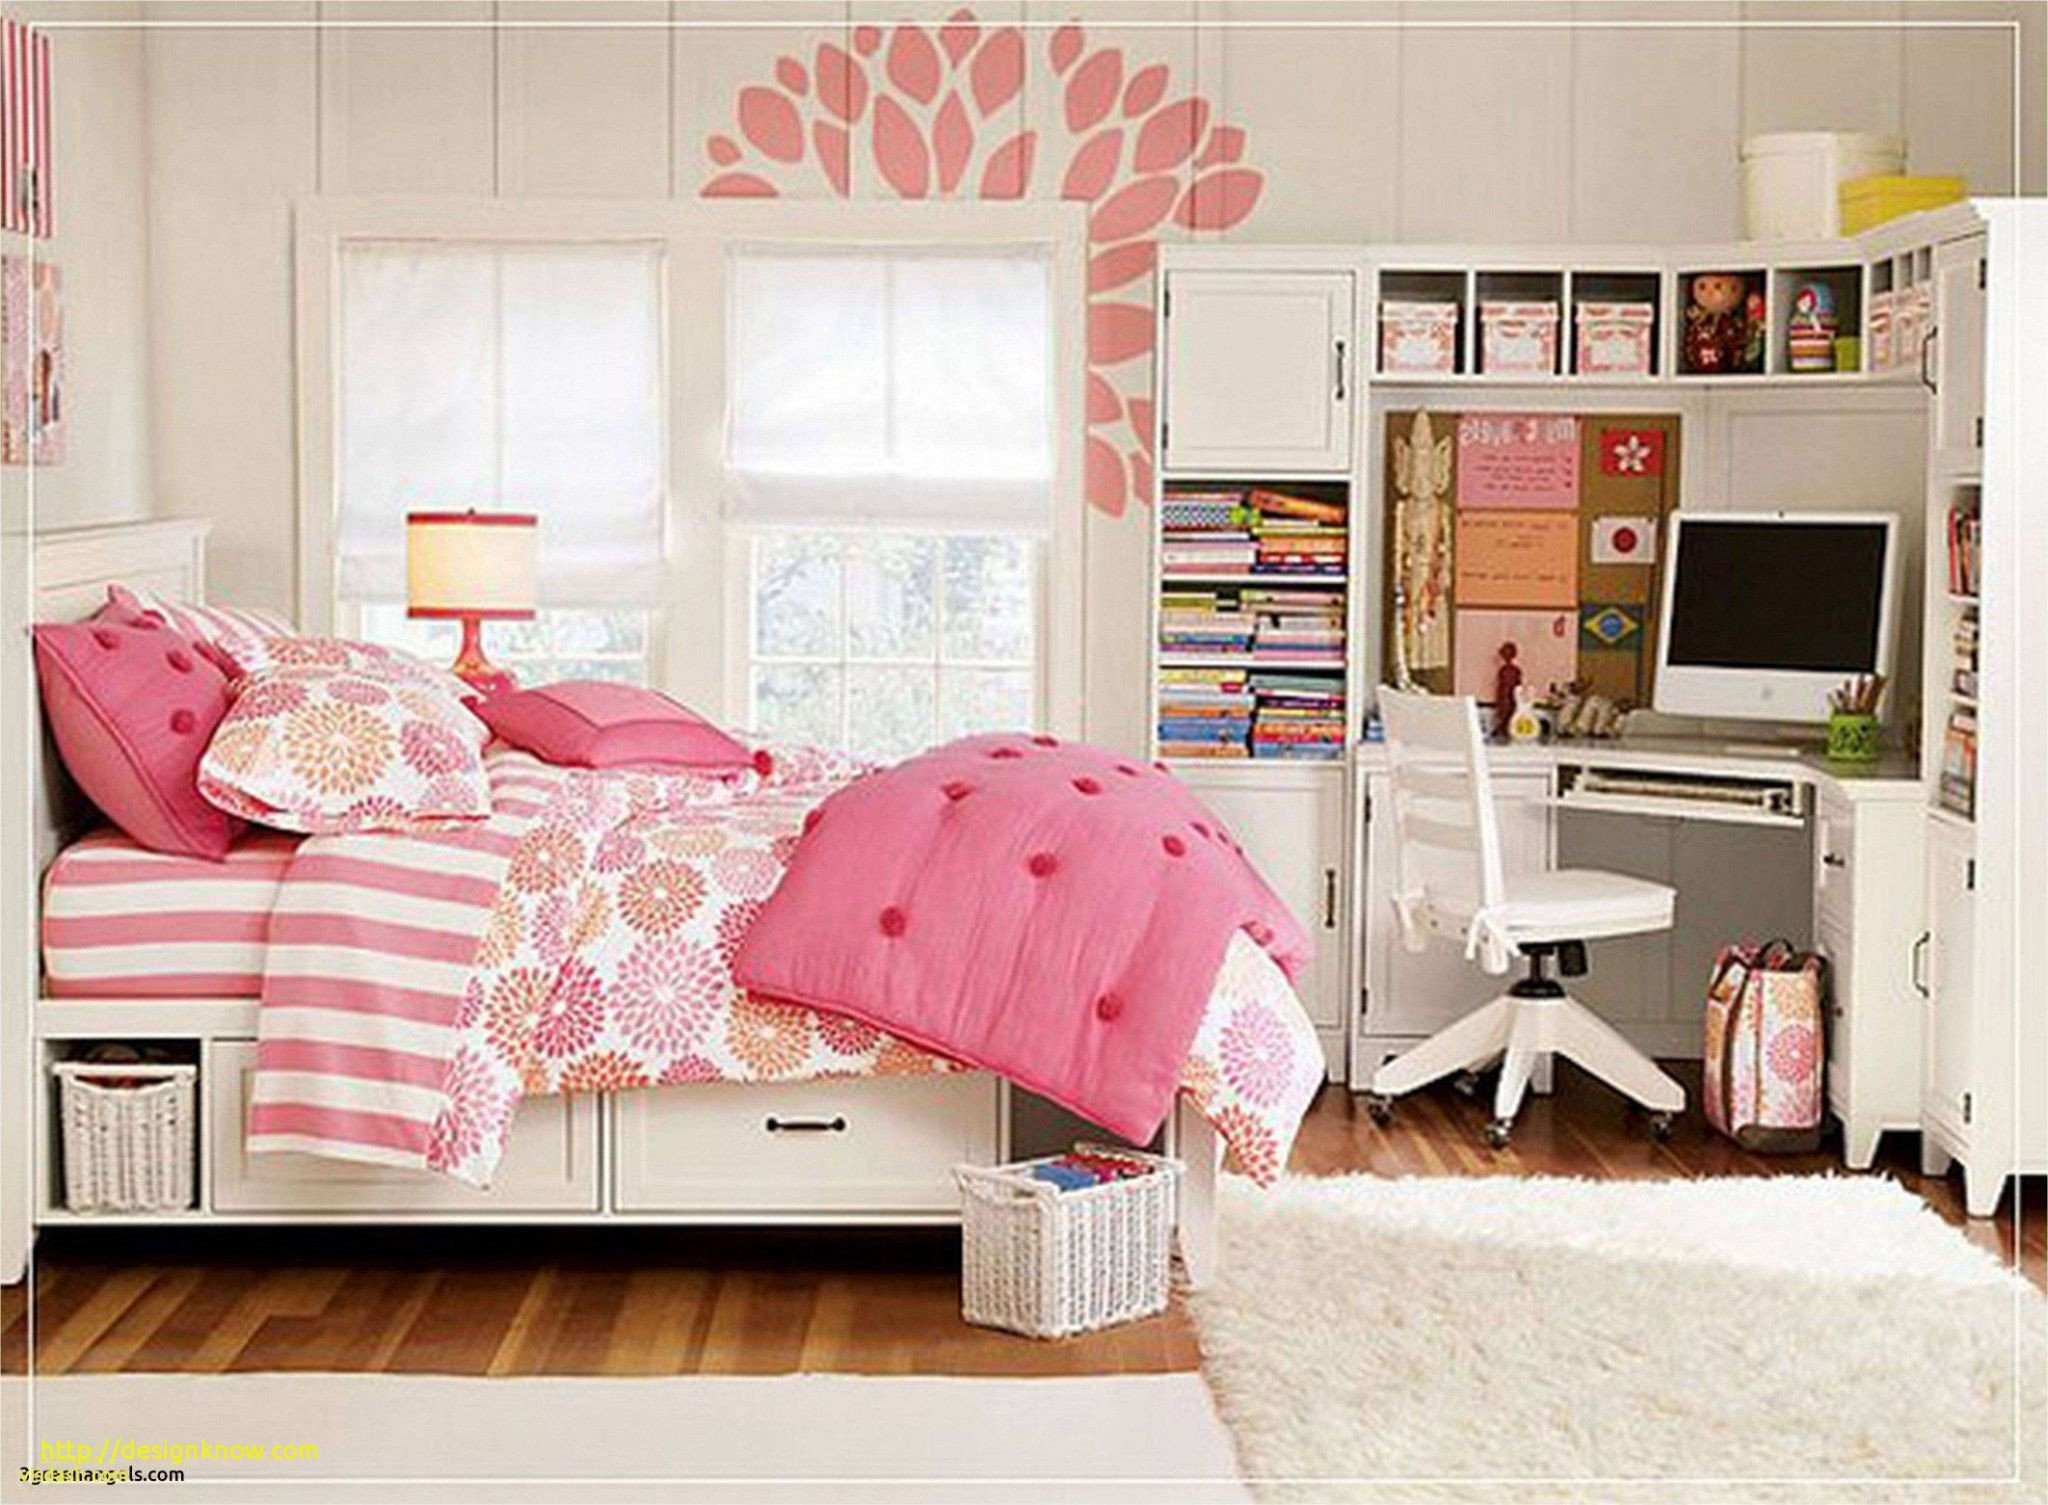 King Bedroom Furniture Set Inspirational Unique Interior Design for Small Size Bedroom